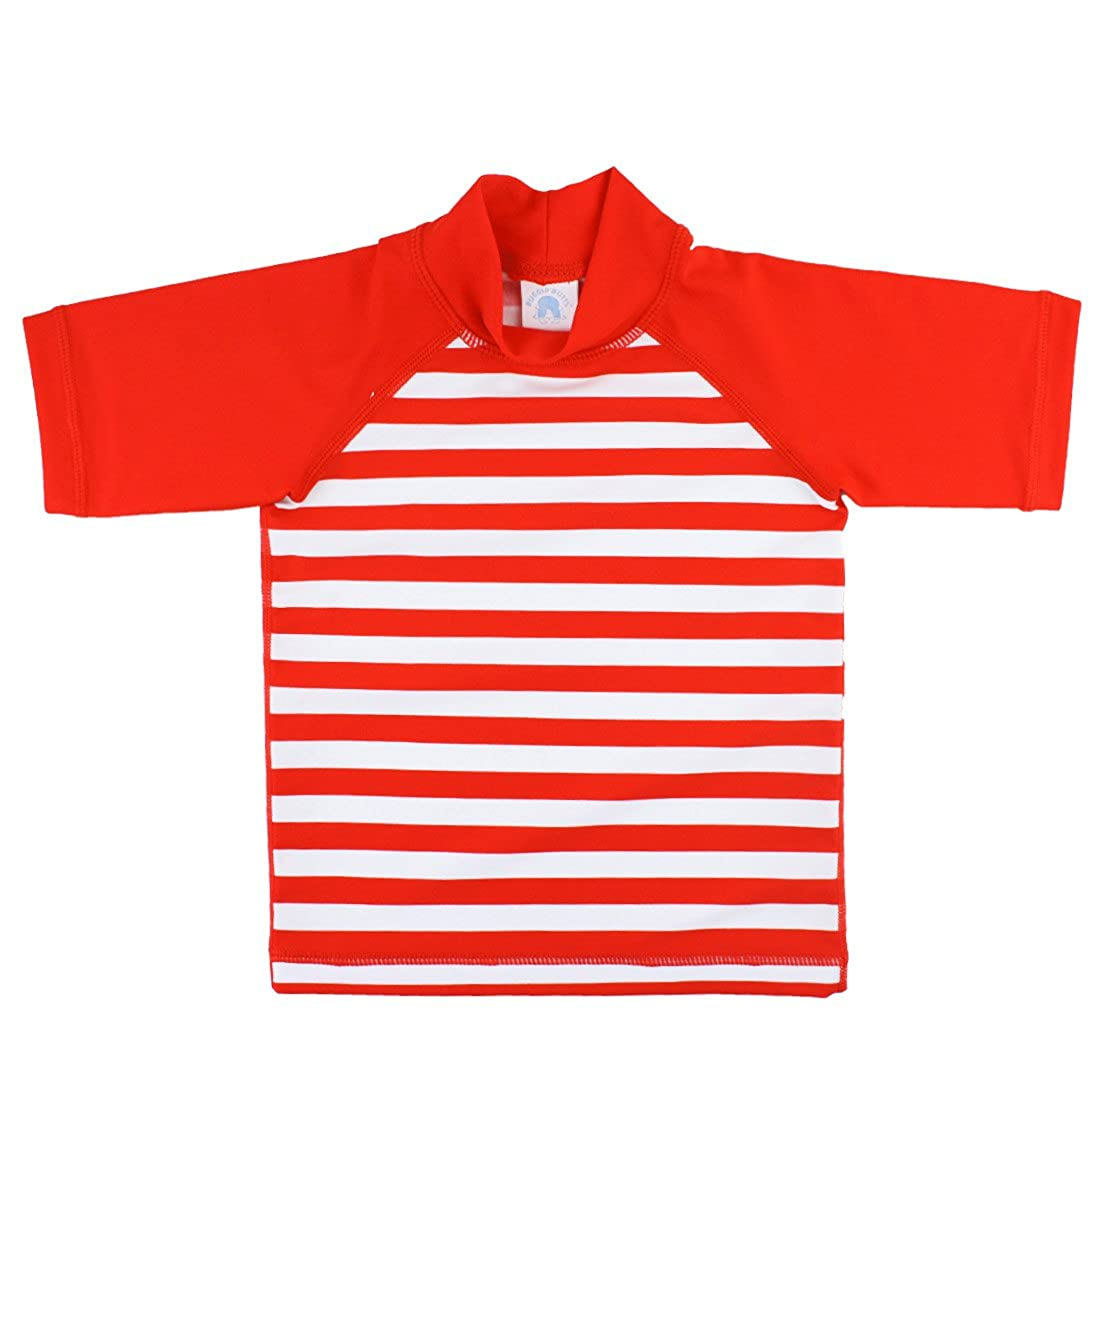 RuggedButts Baby/Toddler Boys Short Sleeve Striped Rash Guard Top with UPF 50+ Sun Protection RGSYYXX-STRP-SC-BABY